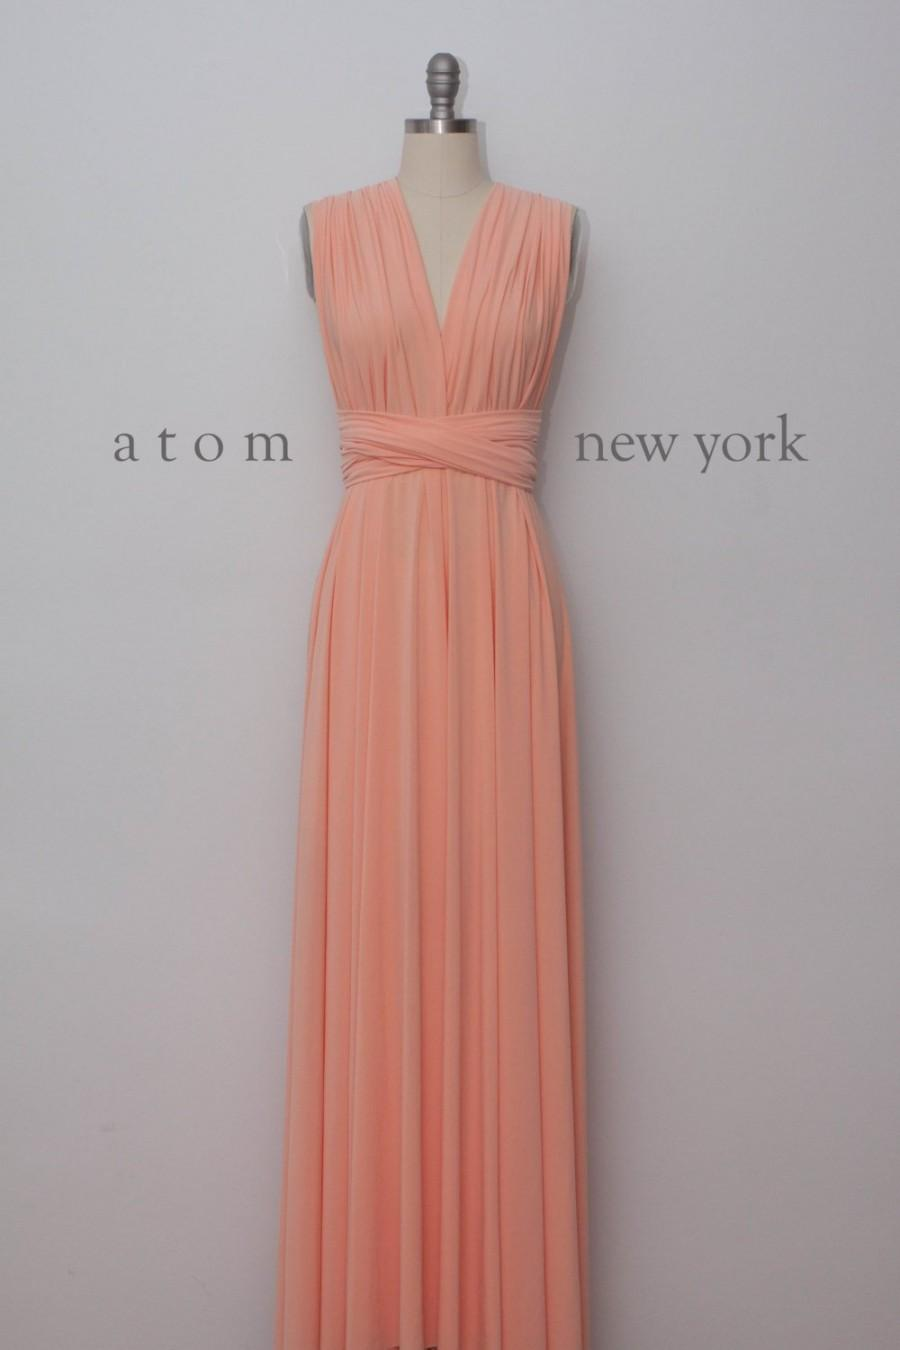 Mariage - Peach LONG Floor Length Gown Maxi Infinity Dress Convertible Formal Multiway Wrap Bridesmaid Dress Evening Wedding Prom Party Transform